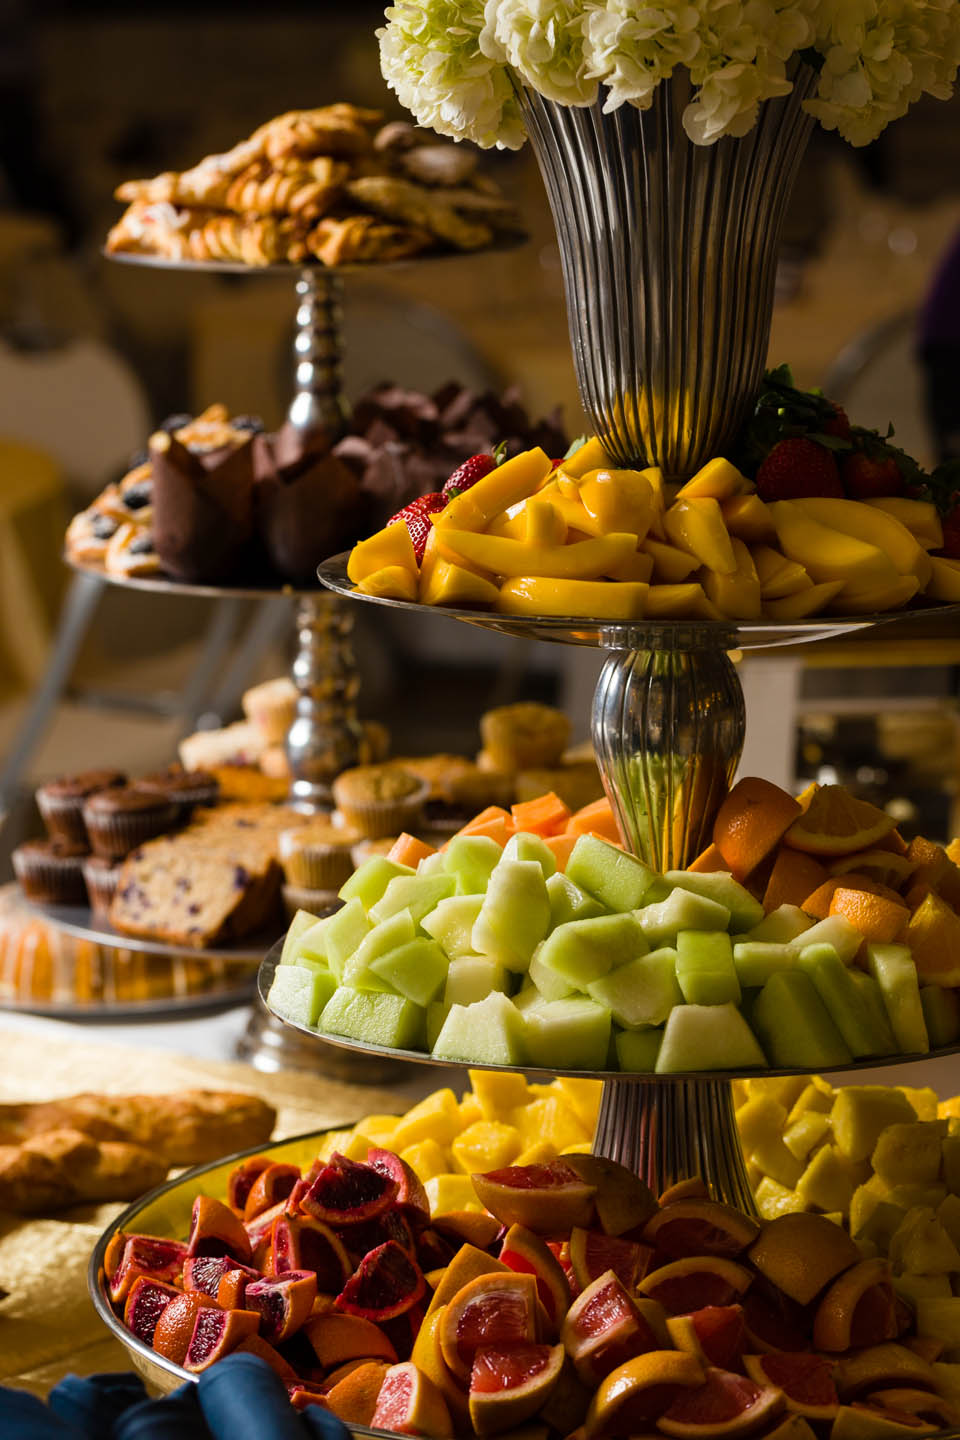 Fruit and Pastry trays are loaded for brunch